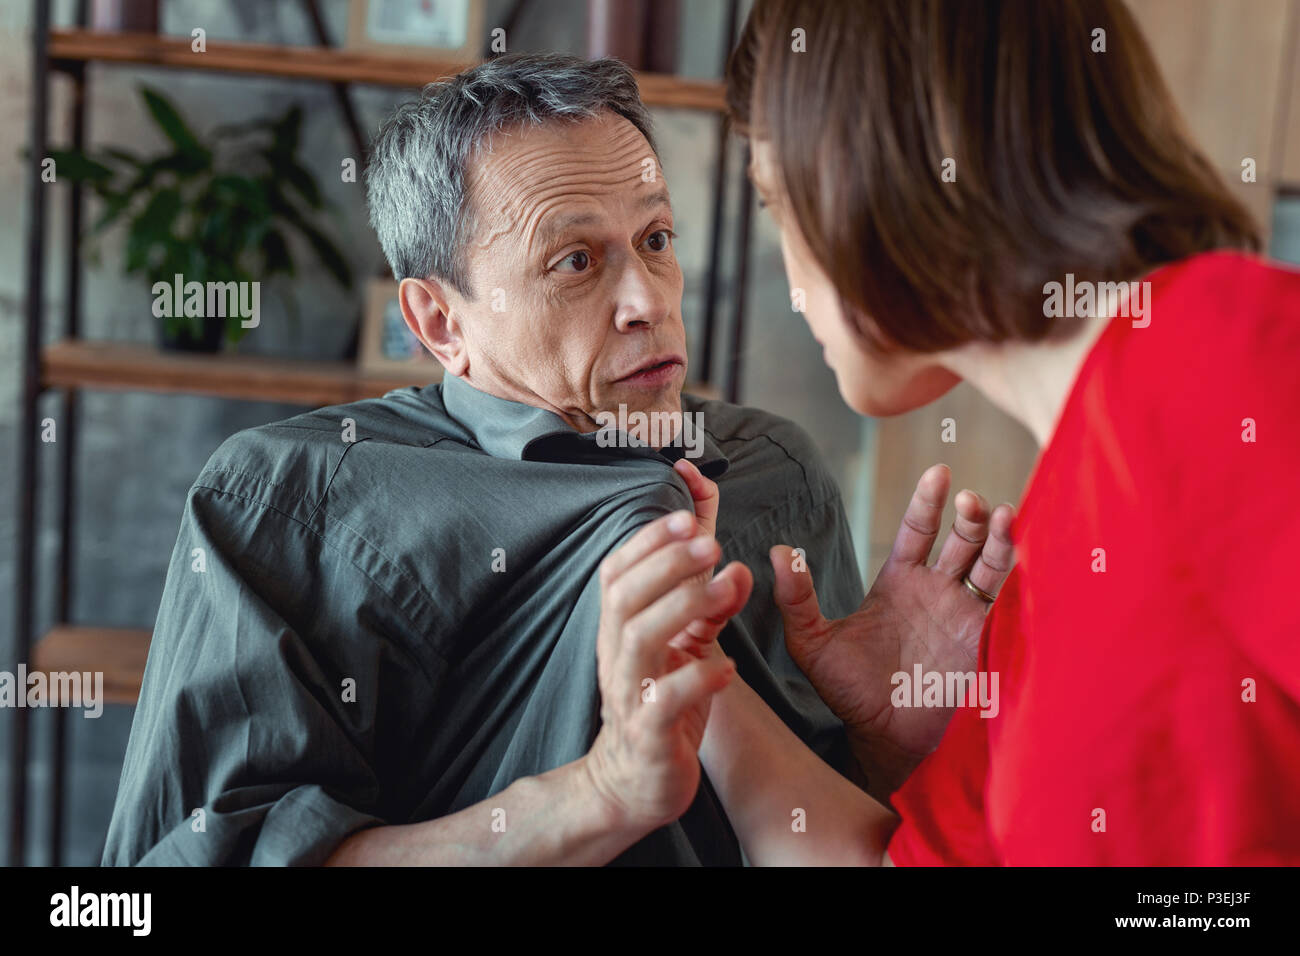 Concerned wife grabbing her husband having dispute - Stock Image